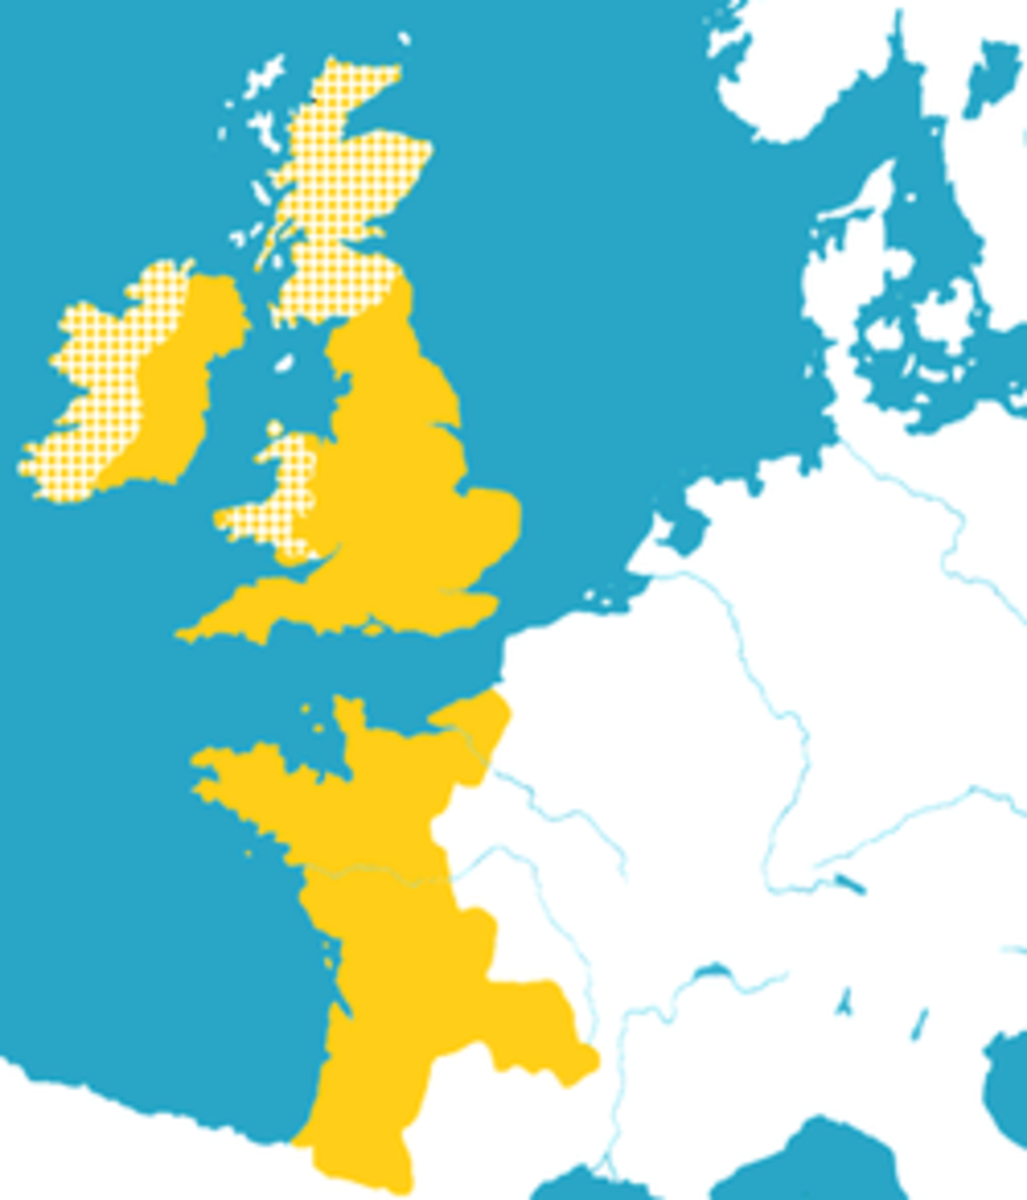 Lands directly administered by Henry in Orange, yellow lands are vassals